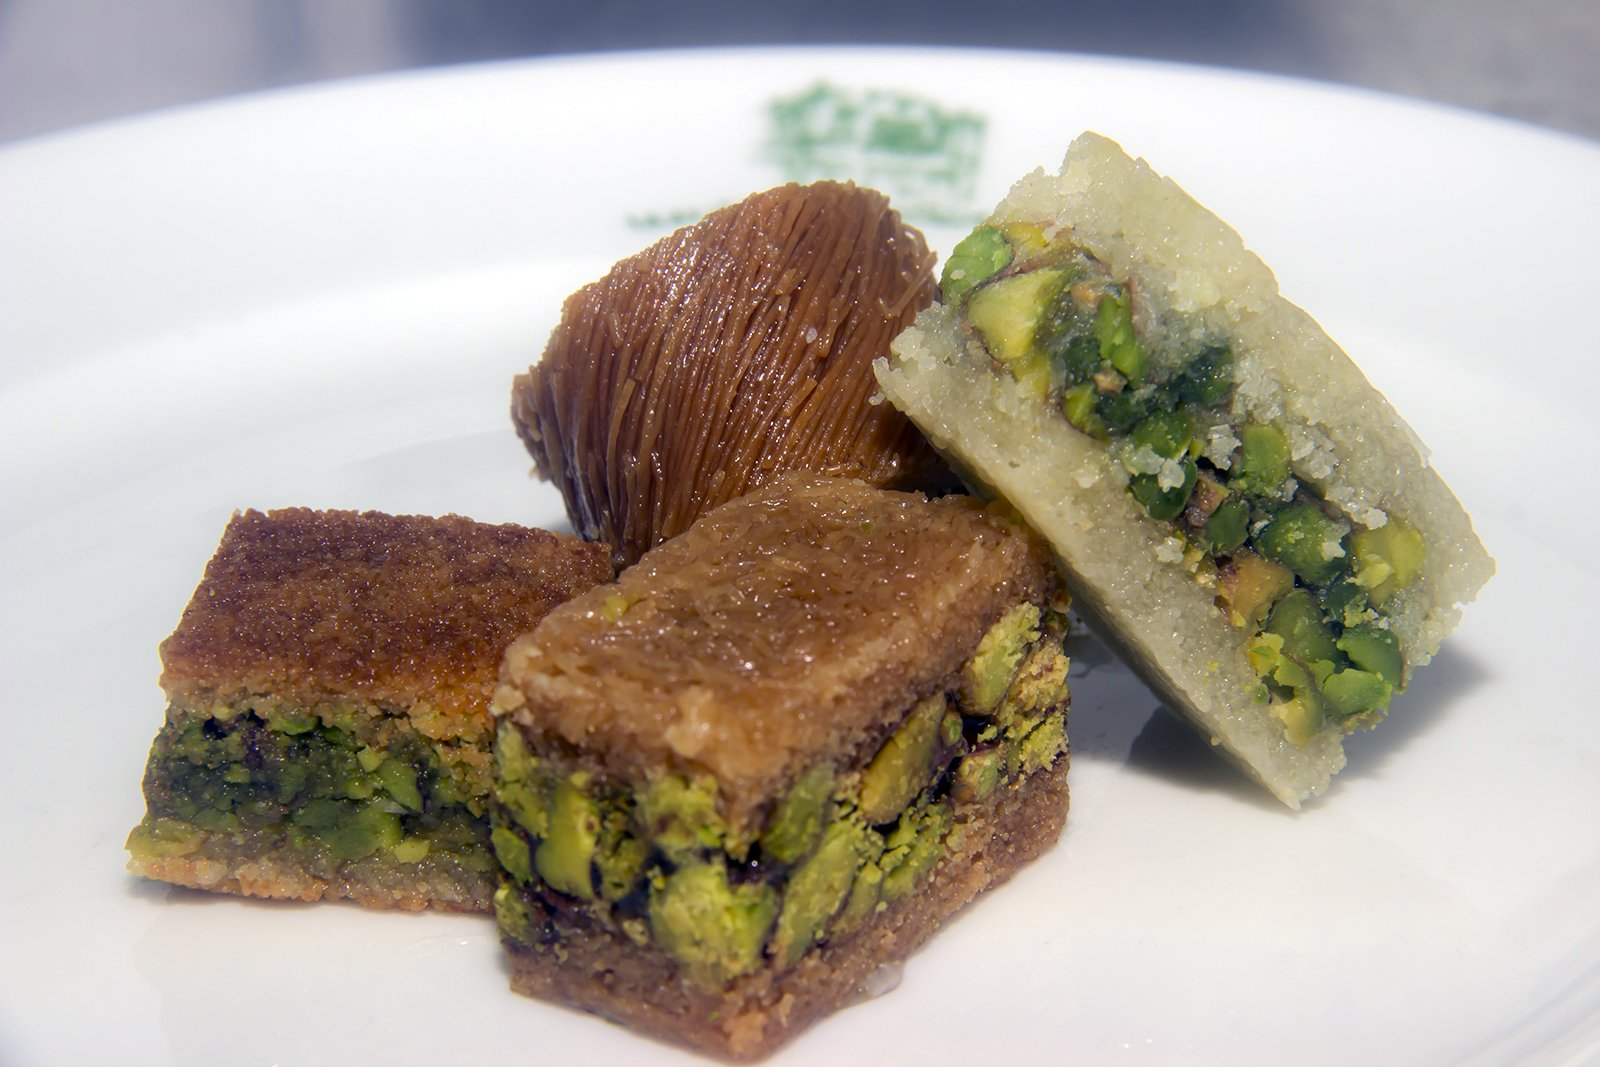 Assorted Baklava Sweets w/Pistachio (20 Oz) : 23-25 Pcs small cut - Imported Fresh from Lebanon - THE ORIGINAL Recipe From Middle East - Assorted Baklava Pastry Pistachios (20 Oz) by Hallab 1881 (Image #4)